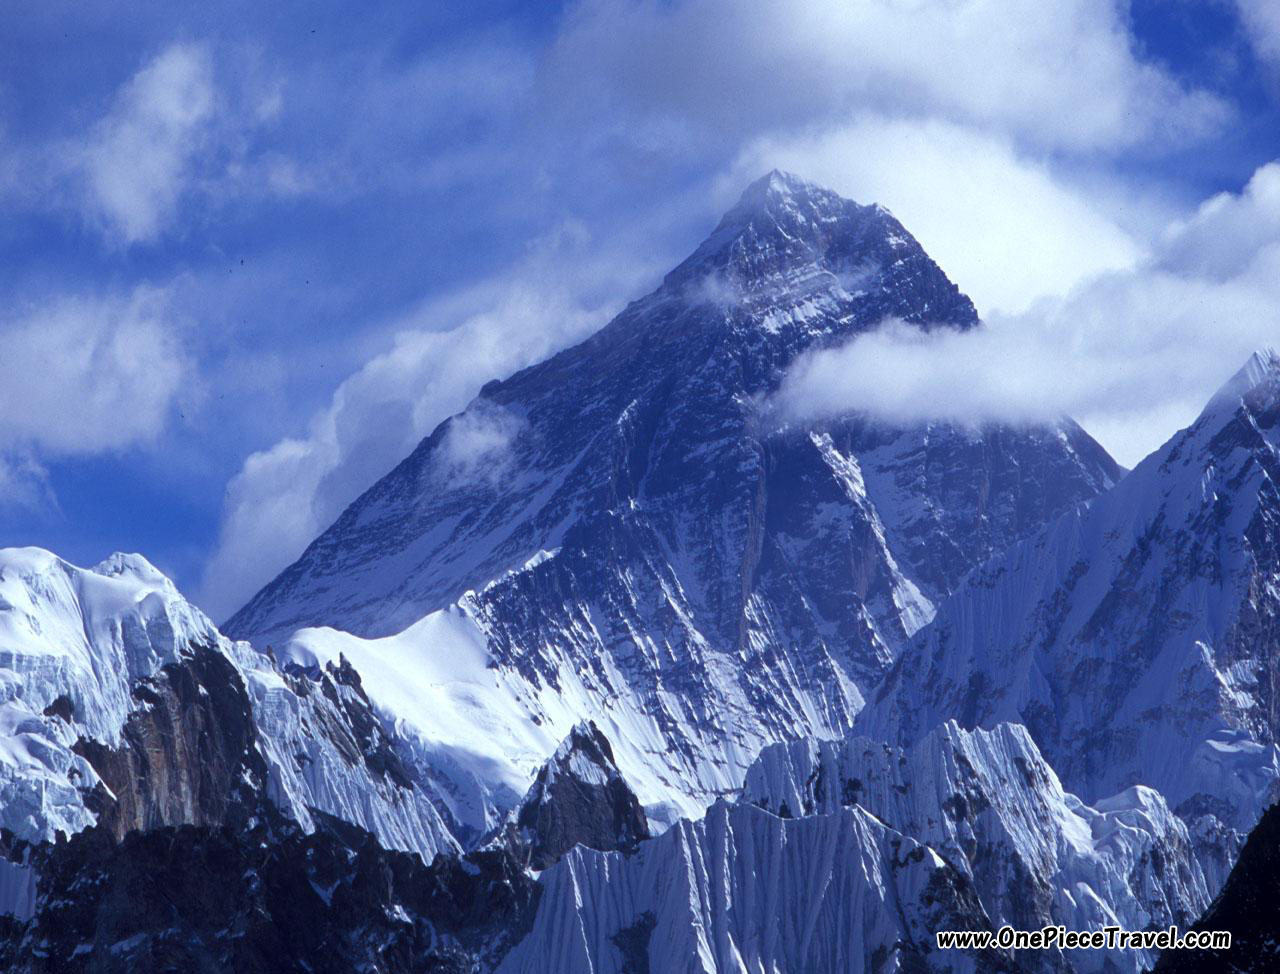 Everest is the highest mountain on Earth